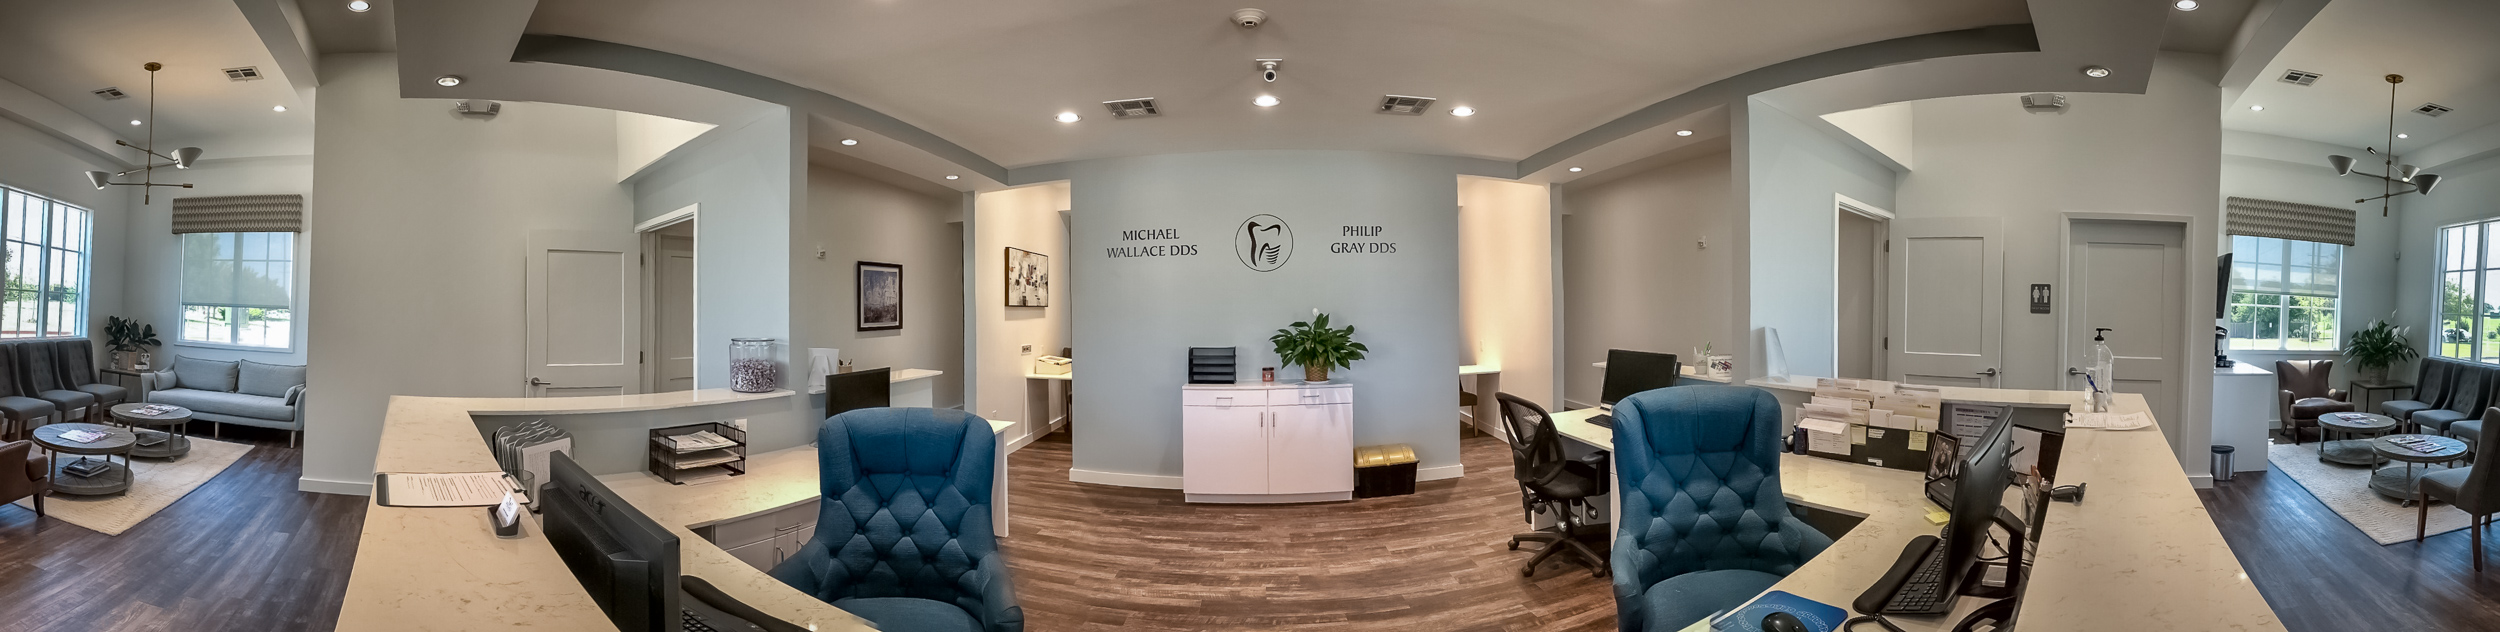 Front Desk | Wallace | Edmond | OK | Indoors | Color | wide panorama | Web Ready.jpg